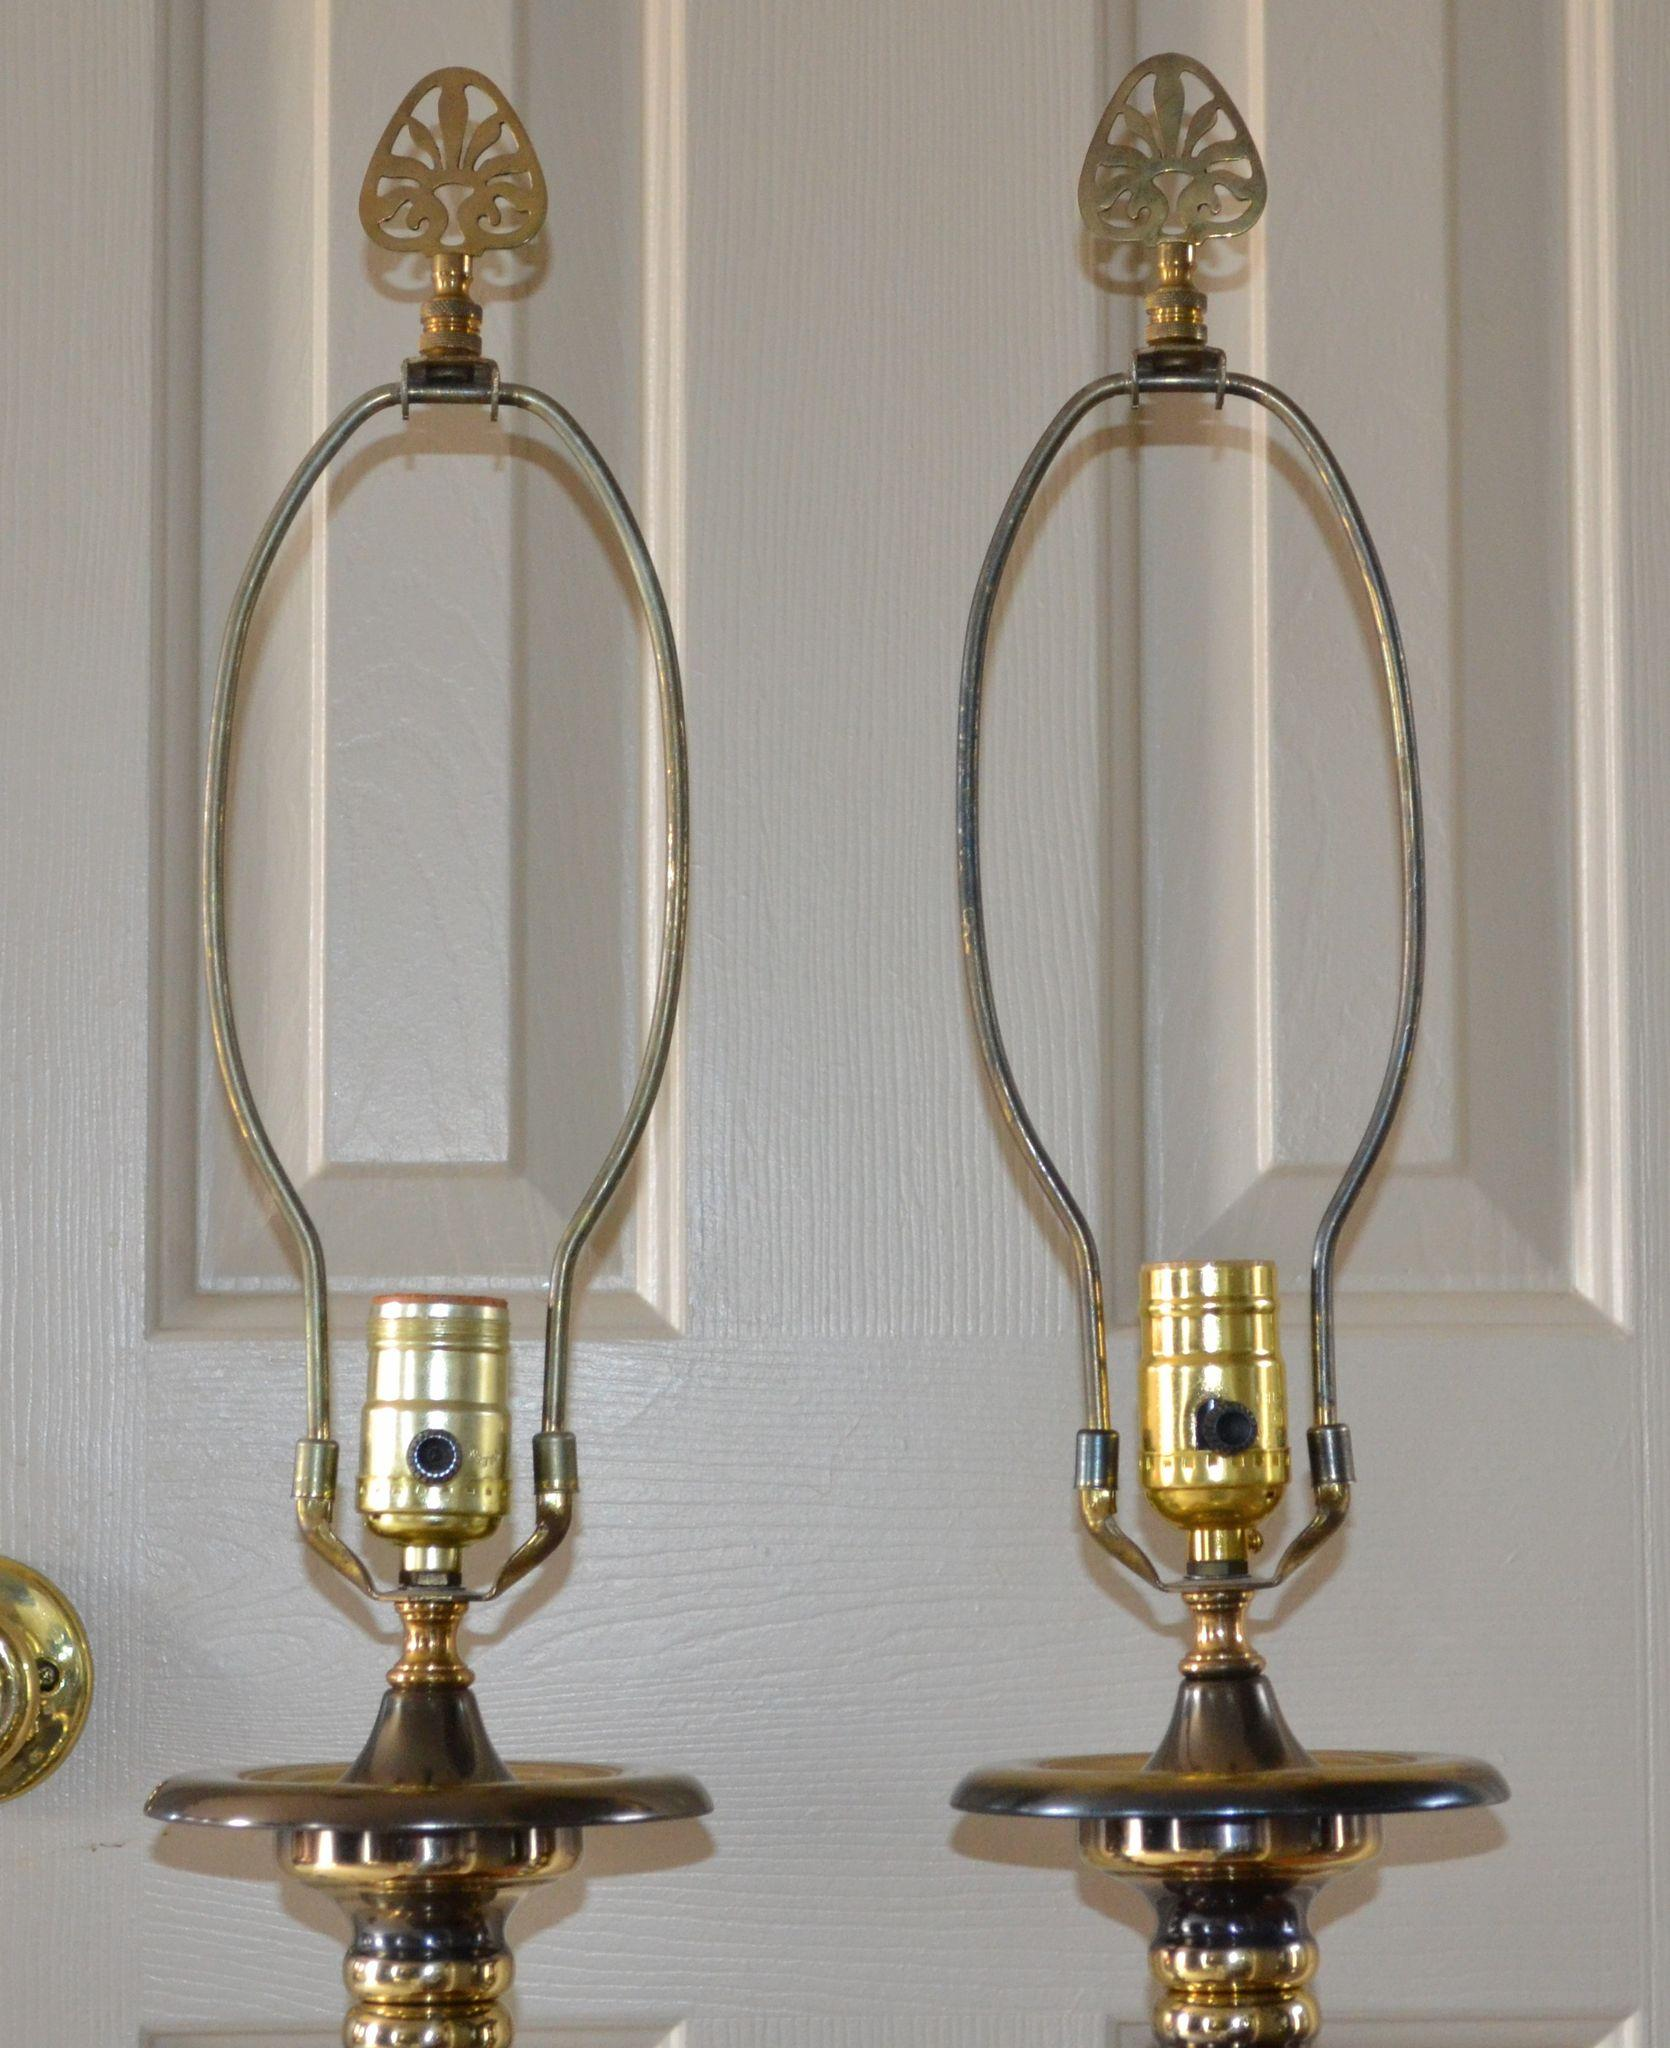 Novelty Lamp Finials : Moody Pair of Burnished Brass Spindle Lamps w/ Finials from rubylane-sold on Ruby Lane